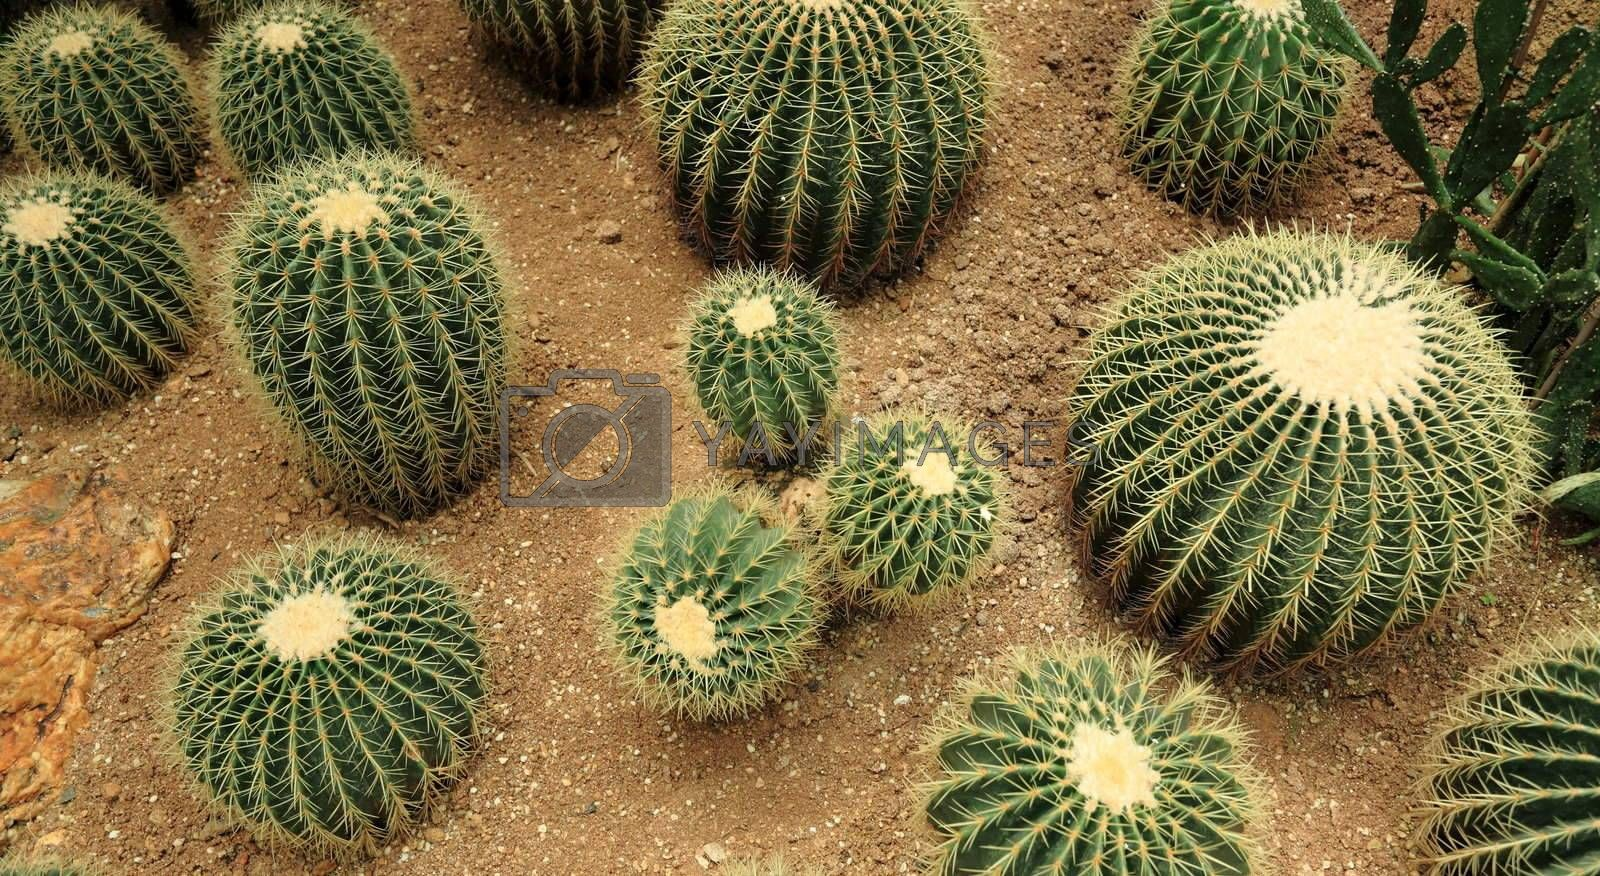 Royalty free image of many cactaceae  by leungchopan